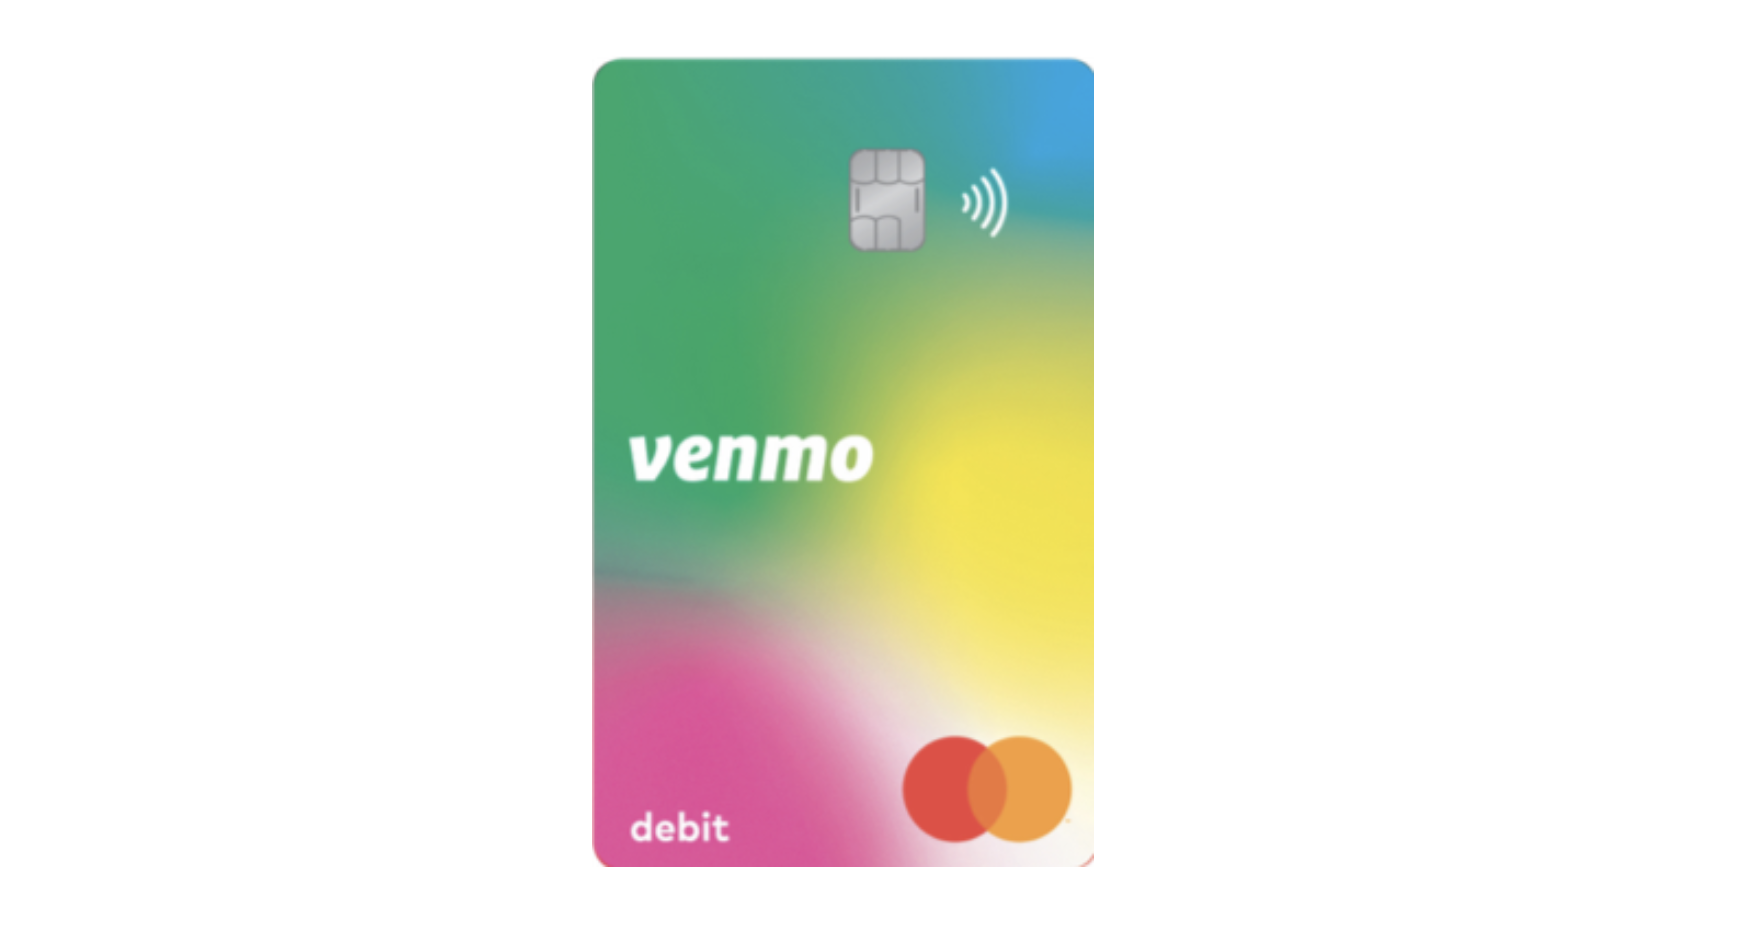 Venmo launches a 'limited edition' rainbow debit card for its